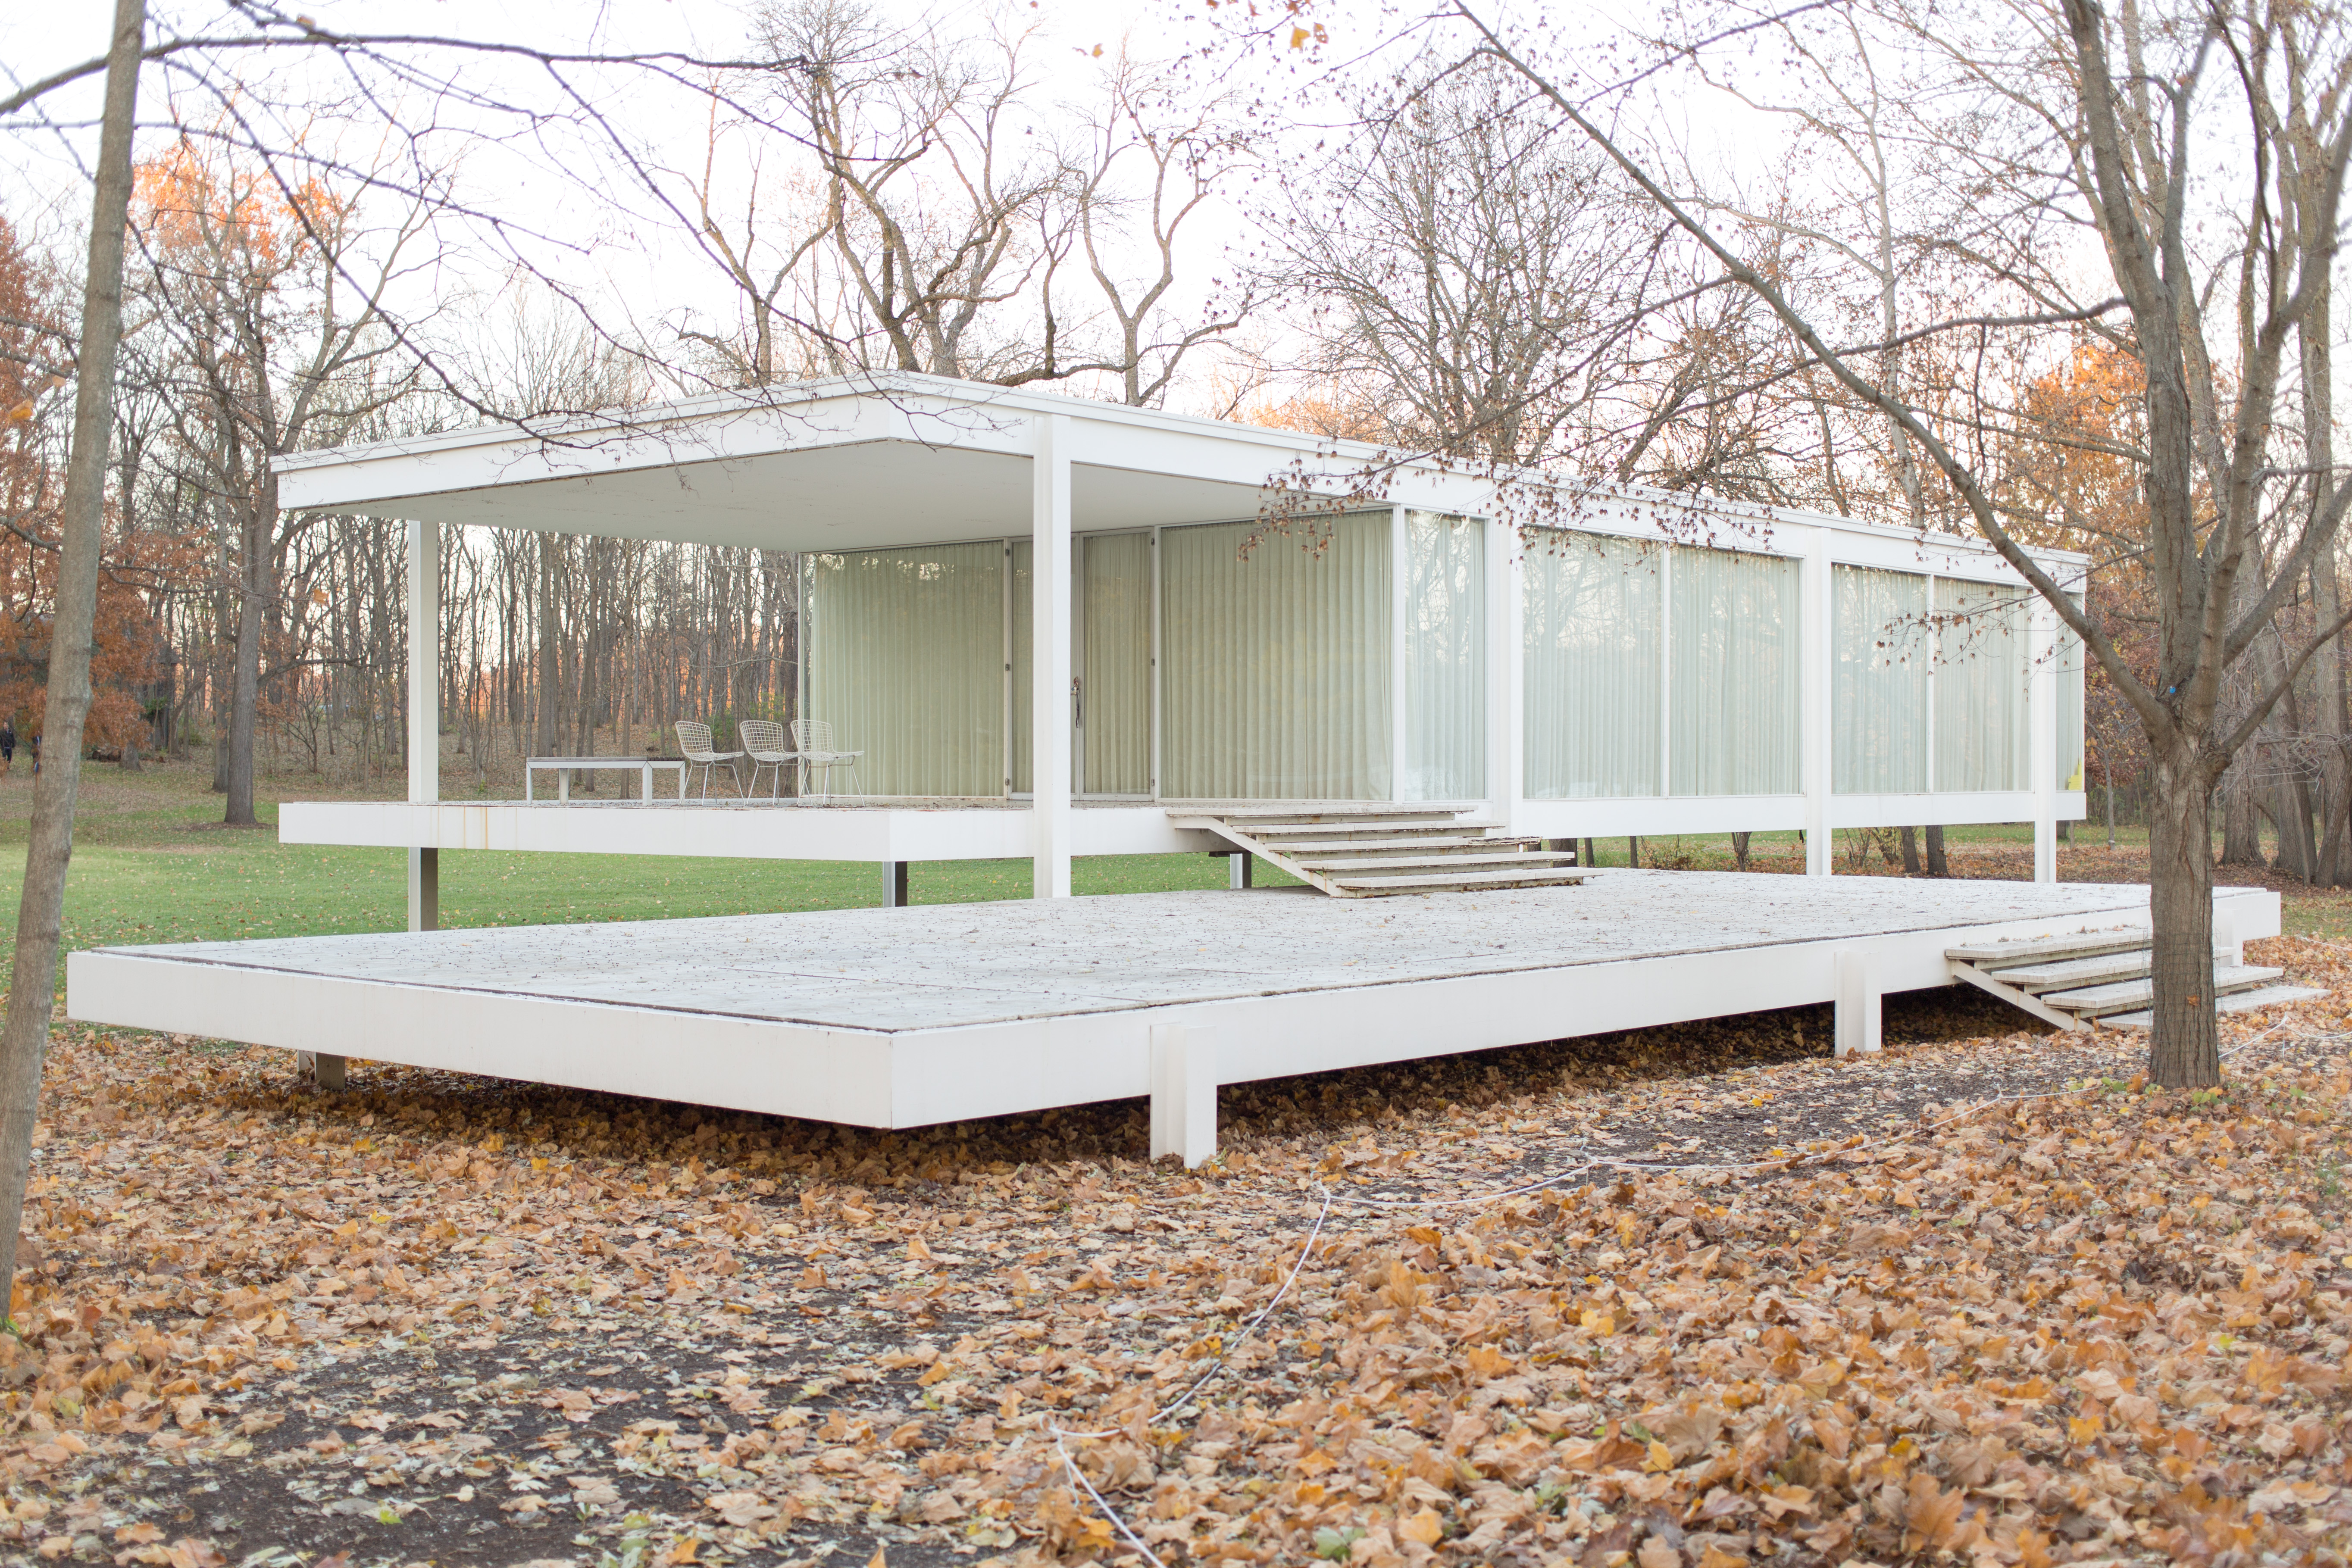 Dateifarnsworth House By Mies Van Der Rohe Exterior 8jpg Wikipedia